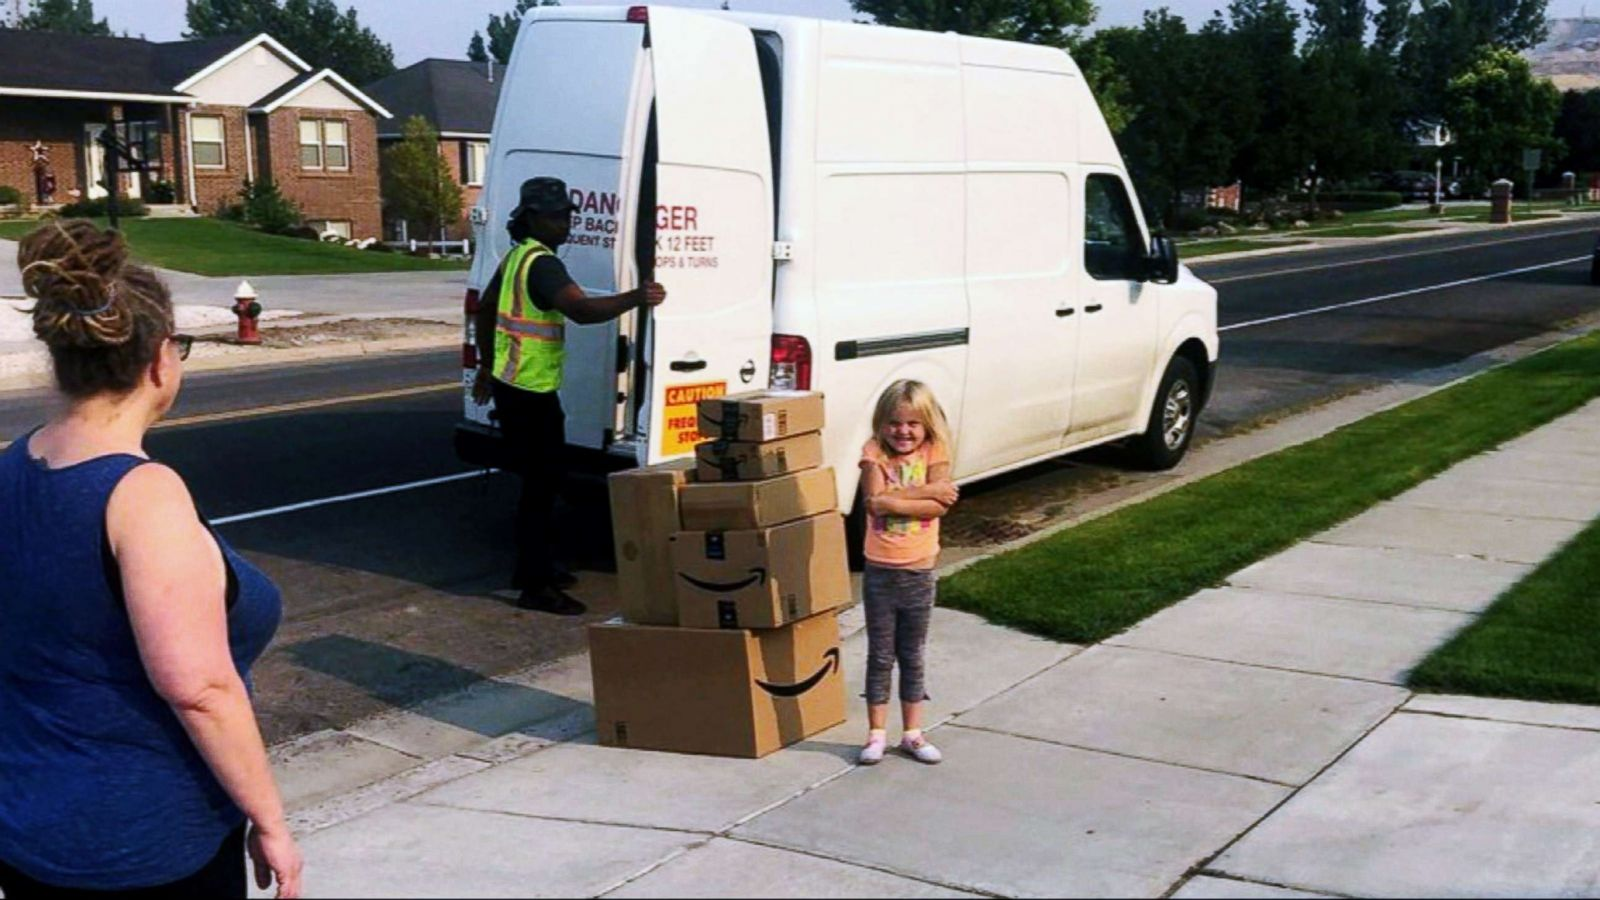 Girl Sneaks 350 Toy Order On Amazon Mom Has Her Donate Items To